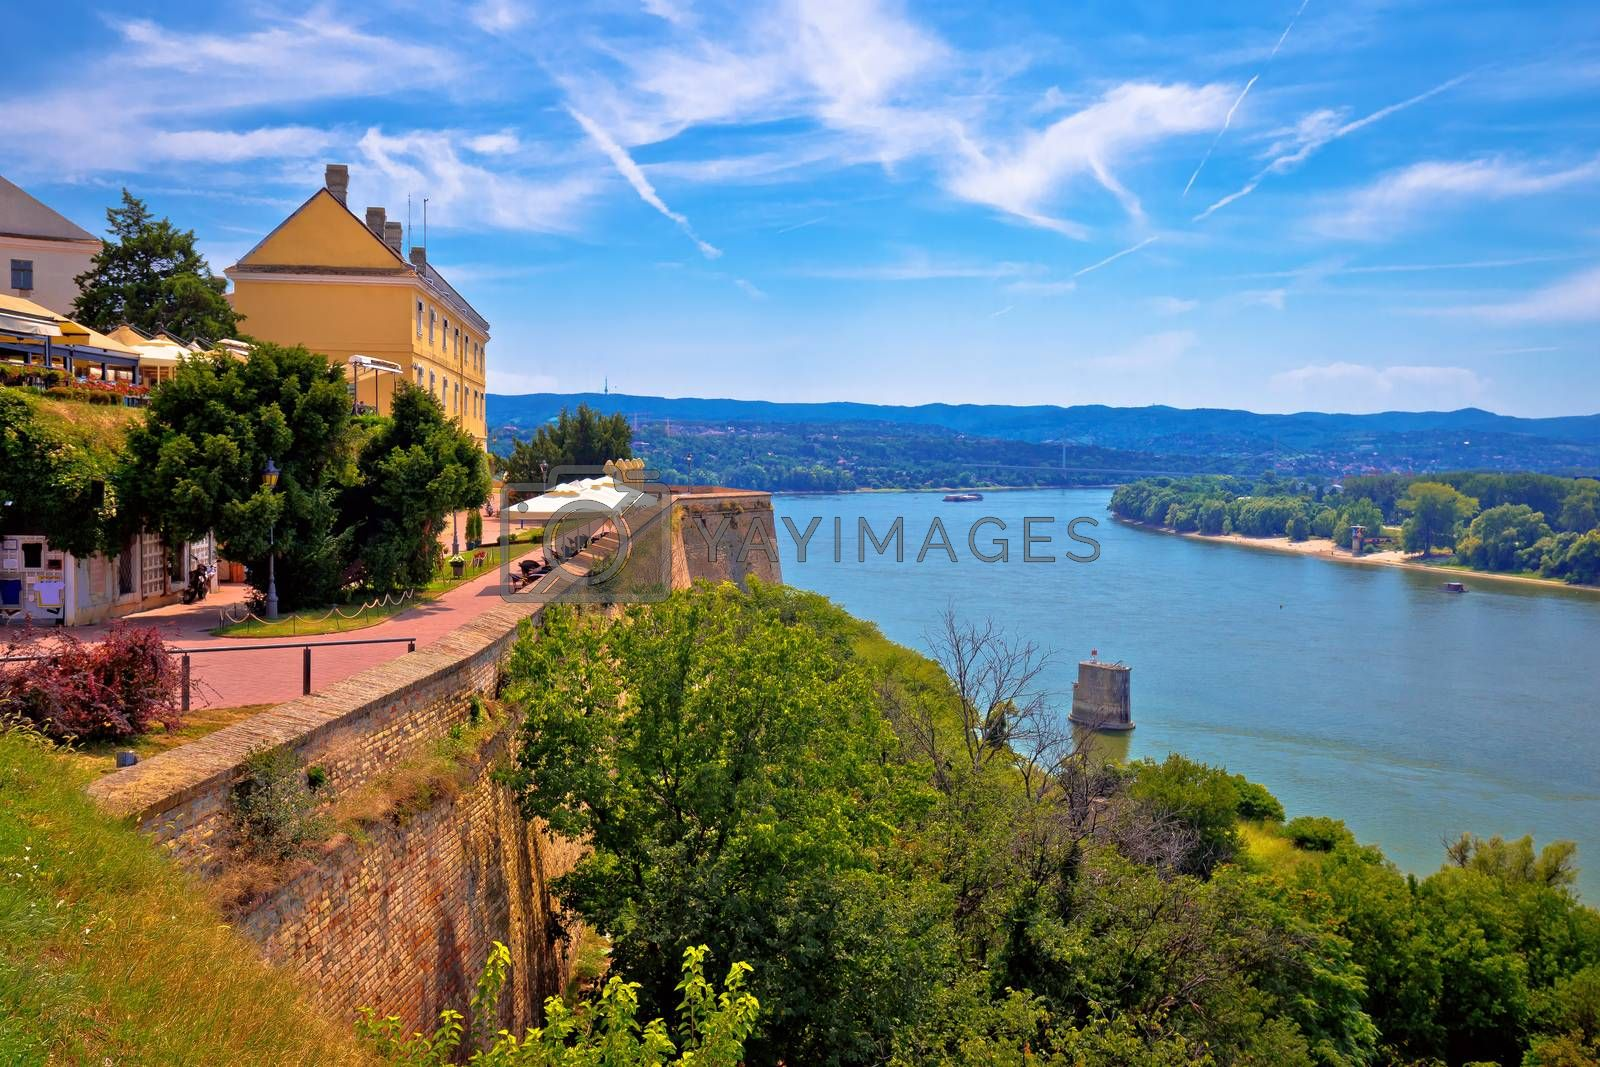 Danube river landscape view from old hillside Petrovaradin town, Novi Sad in Vojvodina region of Serbia